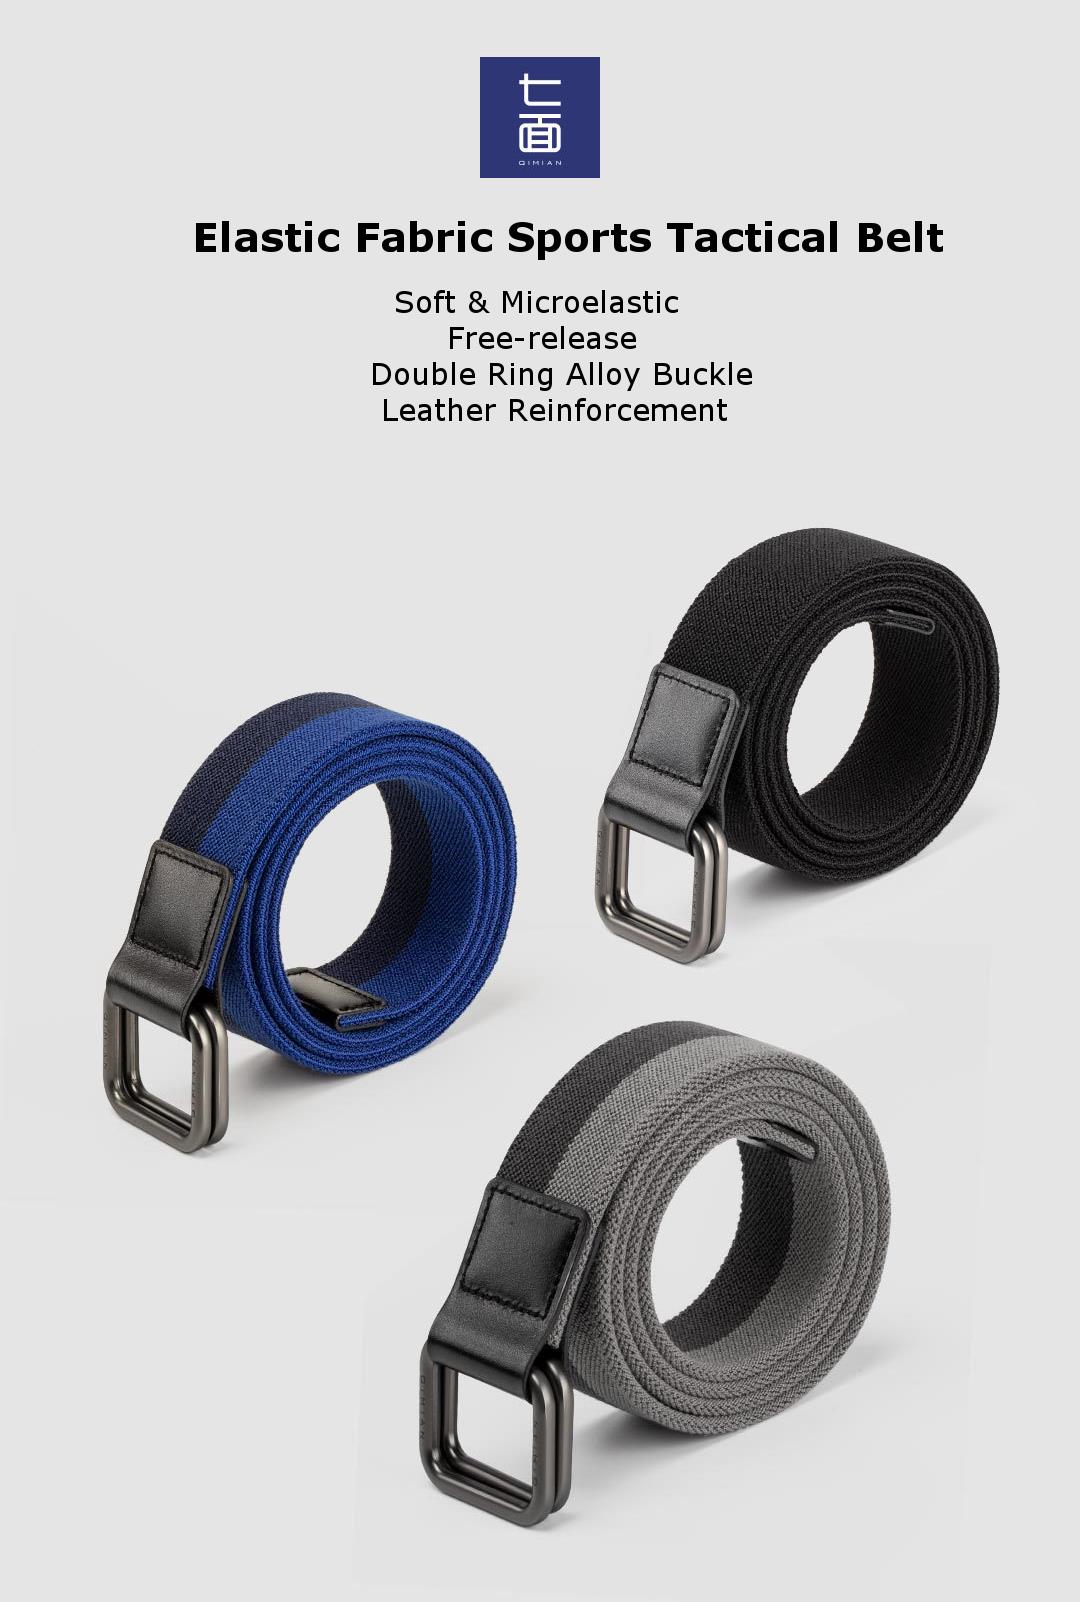 Stupendous Qimian 110 130Cm 3 8Cm Width Quick Release Buckle Elastic Fabric Sports Leisure Tactical Belt From Xiaomi Youpin Lamtechconsult Wood Chair Design Ideas Lamtechconsultcom